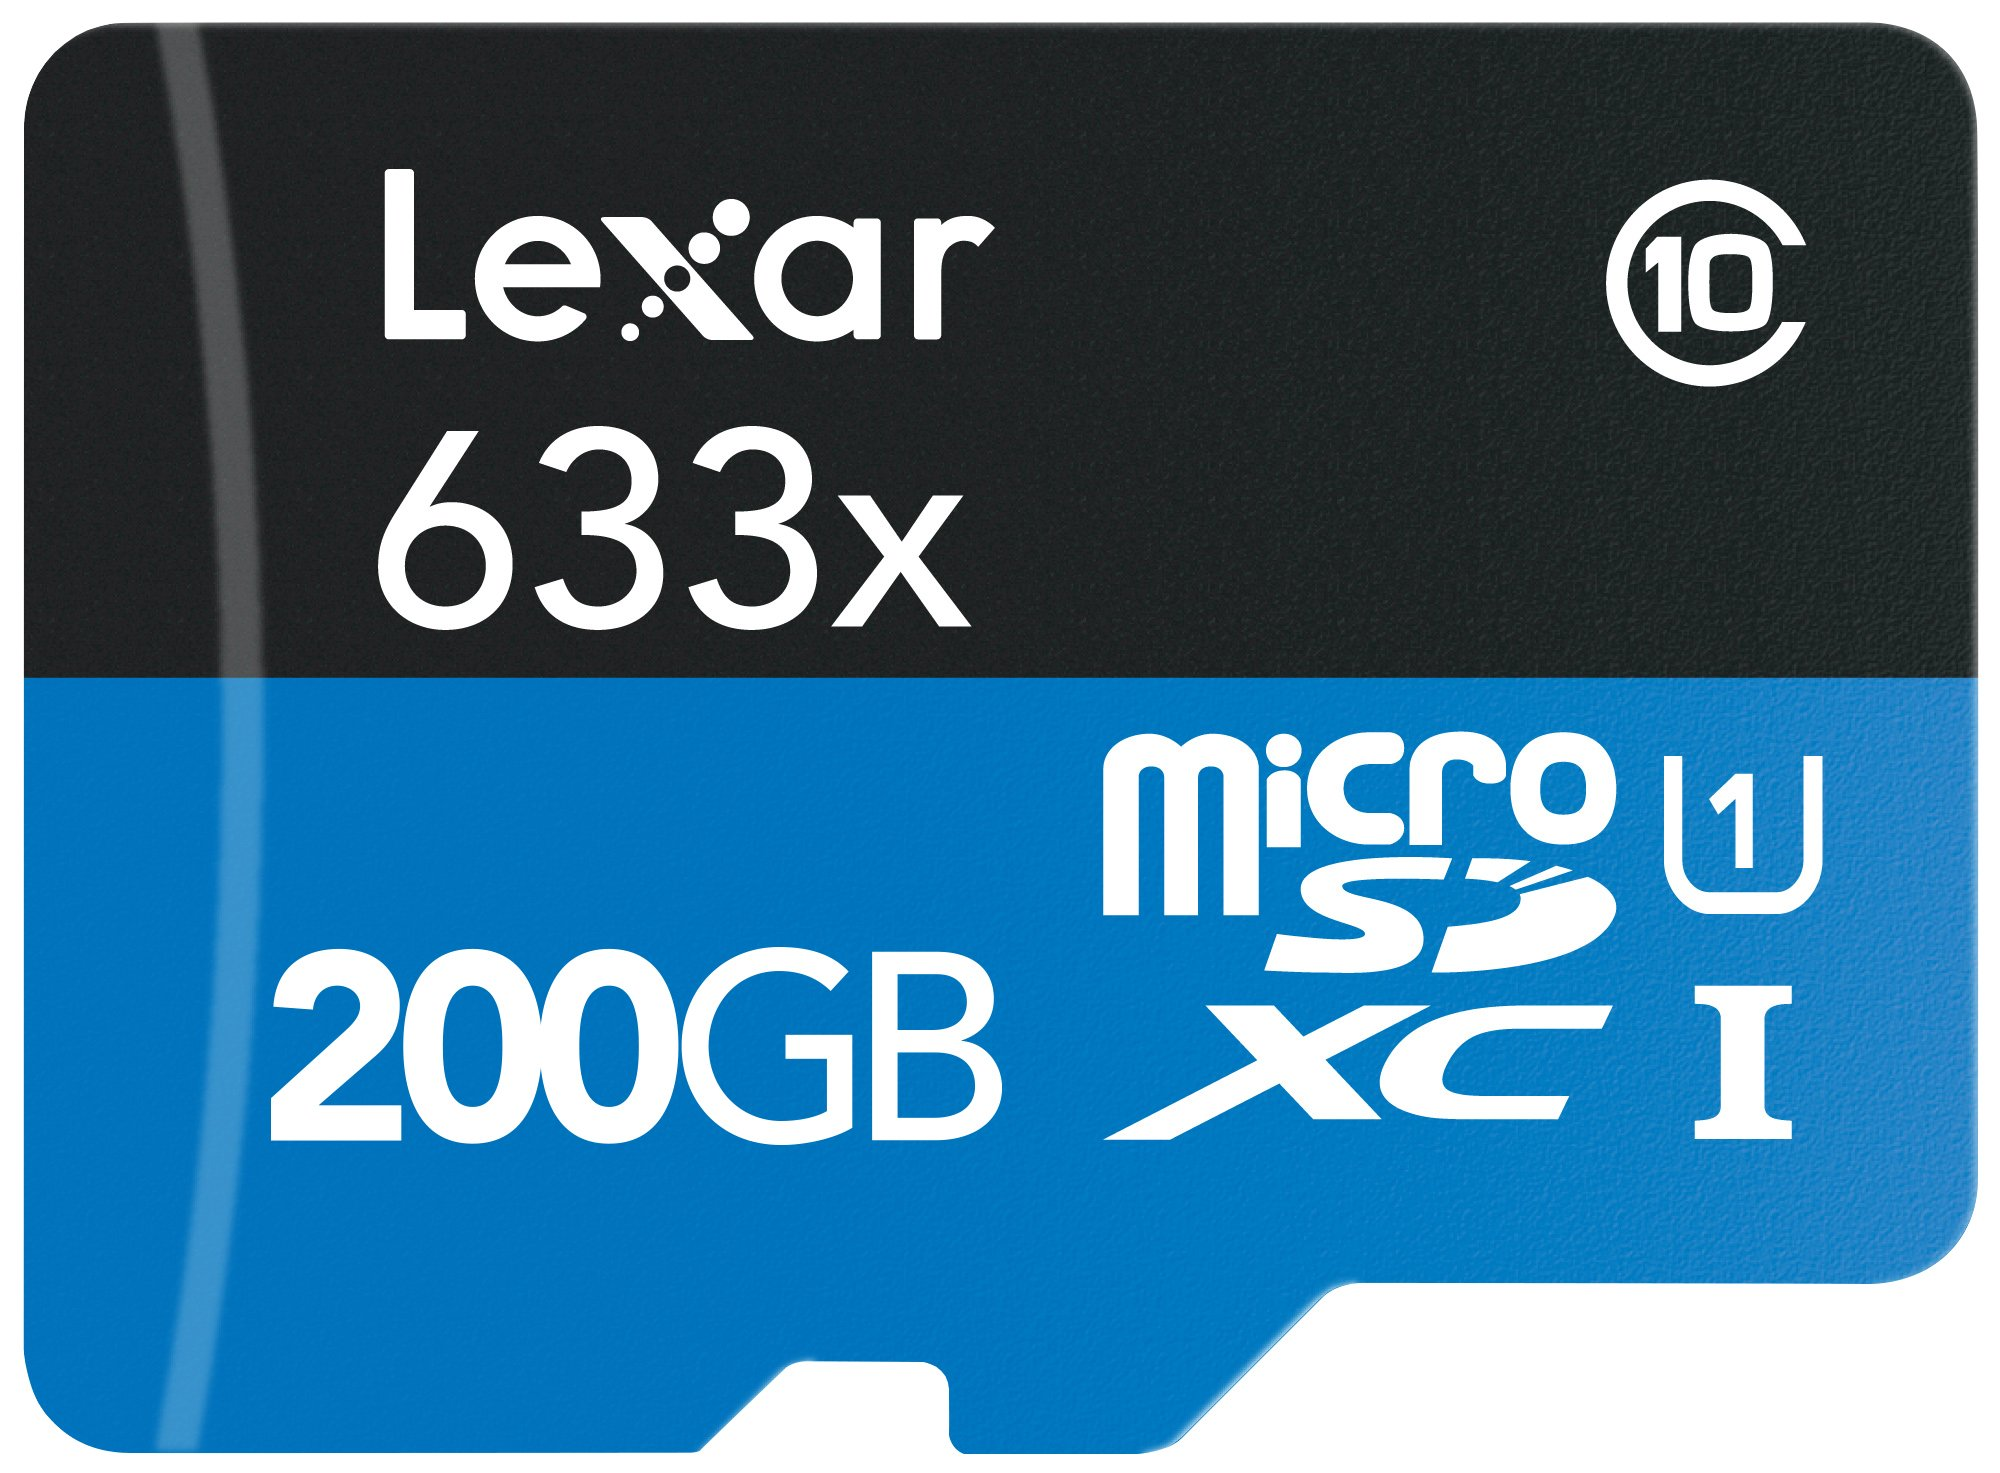 Lexar High-Performance microSDXC 633x 200GB UHS-I w/USB 3.0 Reader Flash Memory Card  - LSDMI200BBNL633R by Lexar